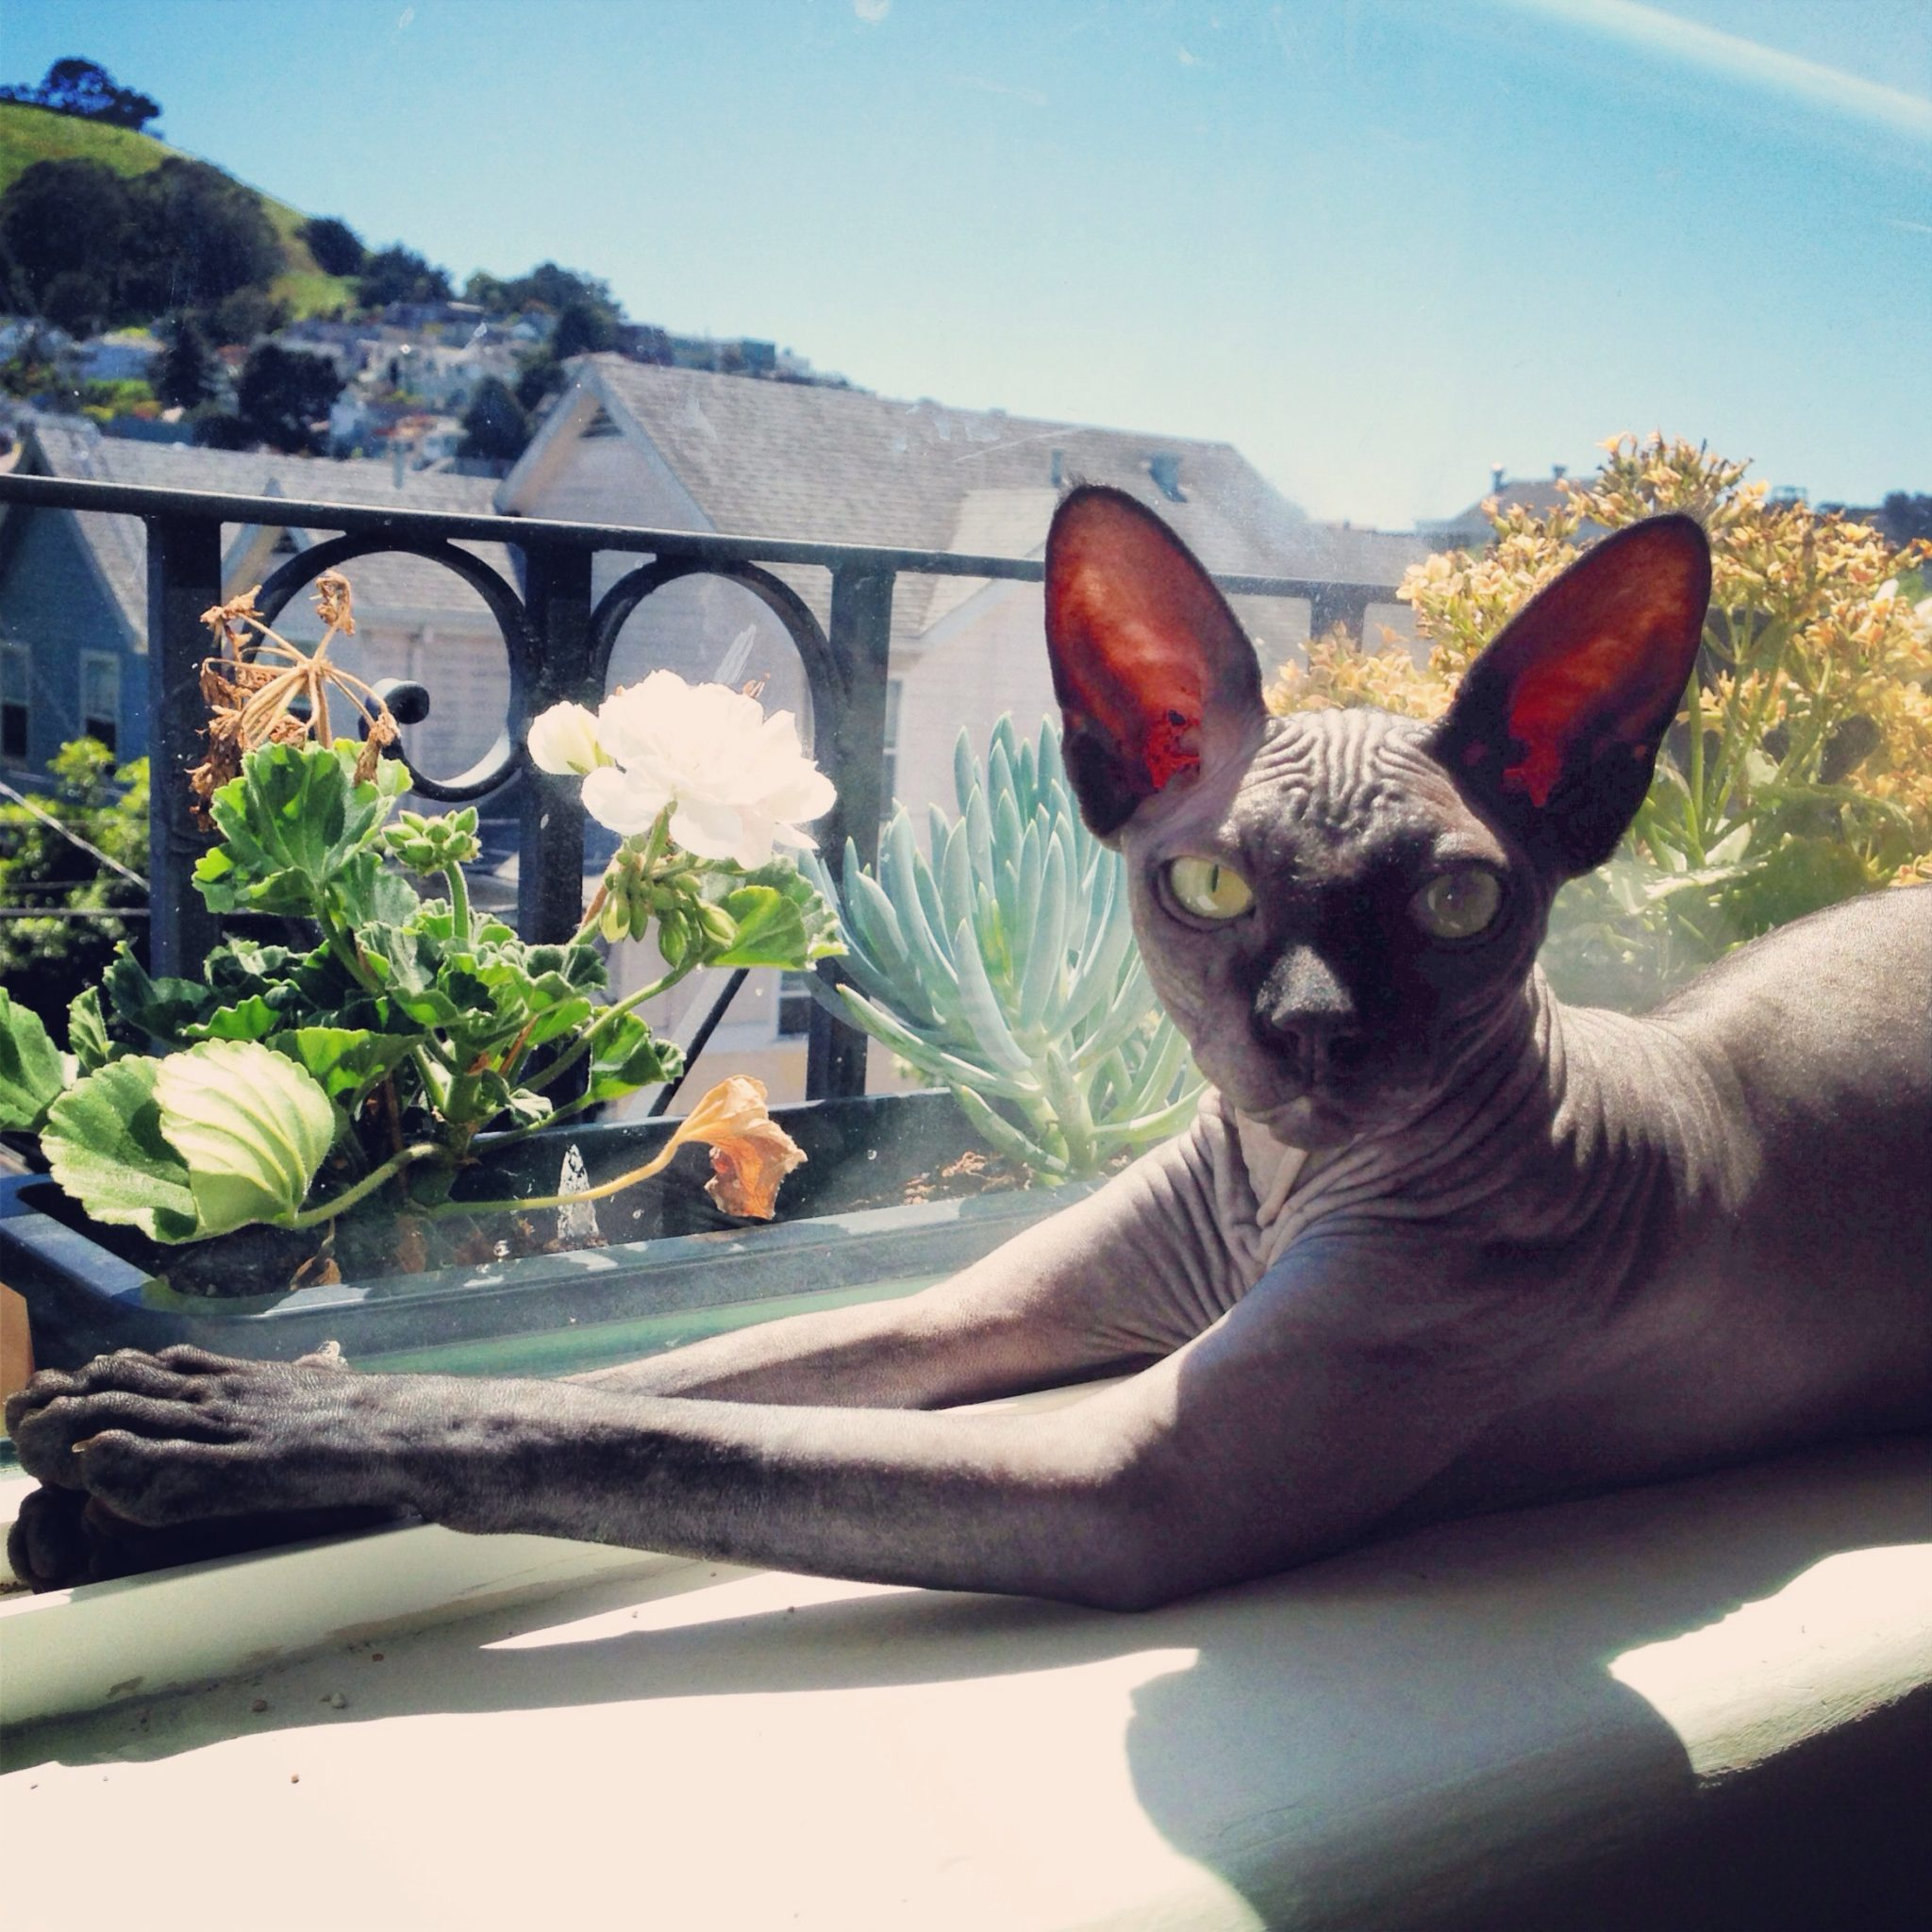 A hairless sphynx cat catches some rays in the window.